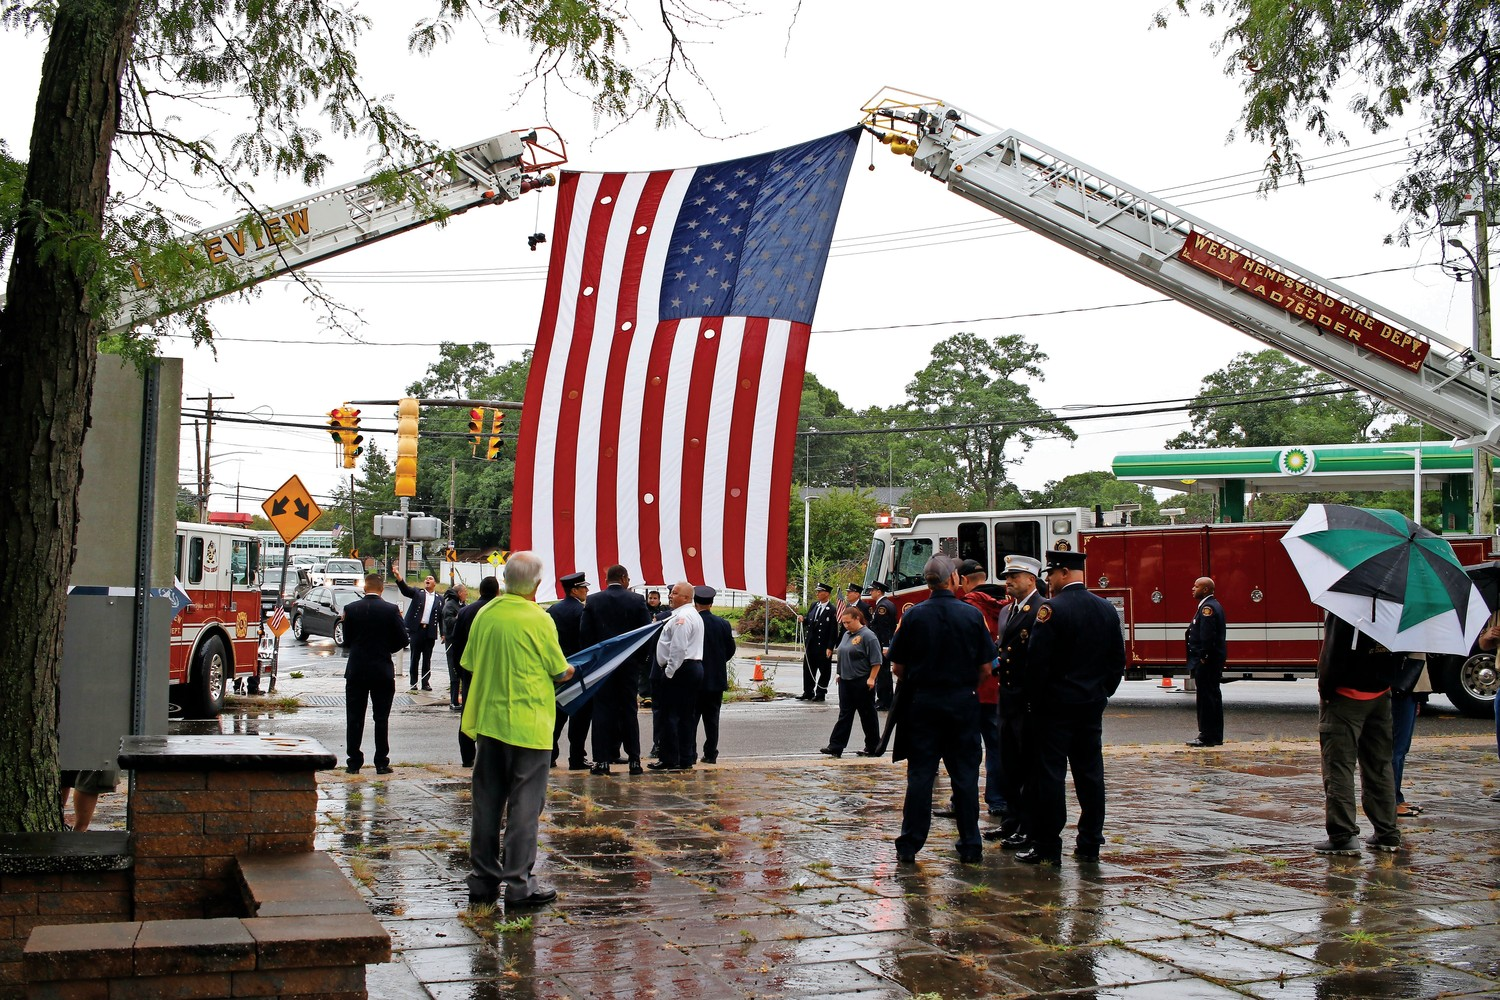 West Hempstead and Lakeview Fire Departments lifted a flag into the sky before the ceremony began.